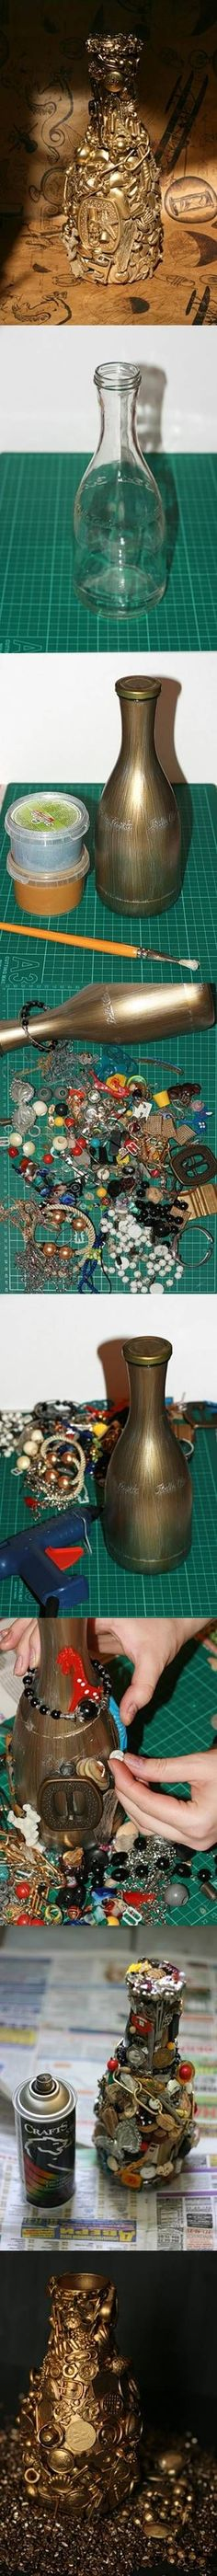 DIY Unwanted Things Decorated Bottle DIY Projects